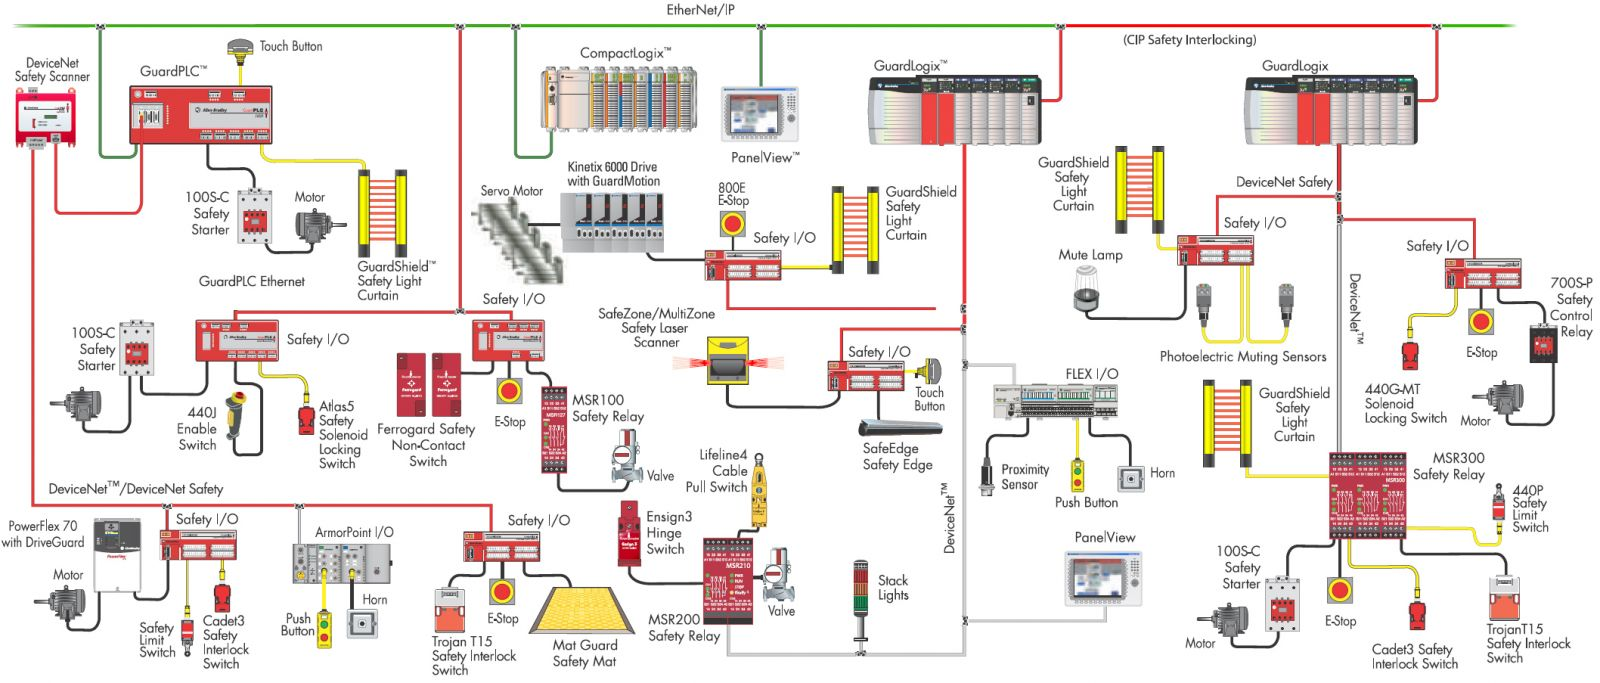 Ignition Switch Wiring Diagram Ferrogard Powerflex 4 Program Cedes With Brand Name Allen Bradley Rh Fbselektronik Com